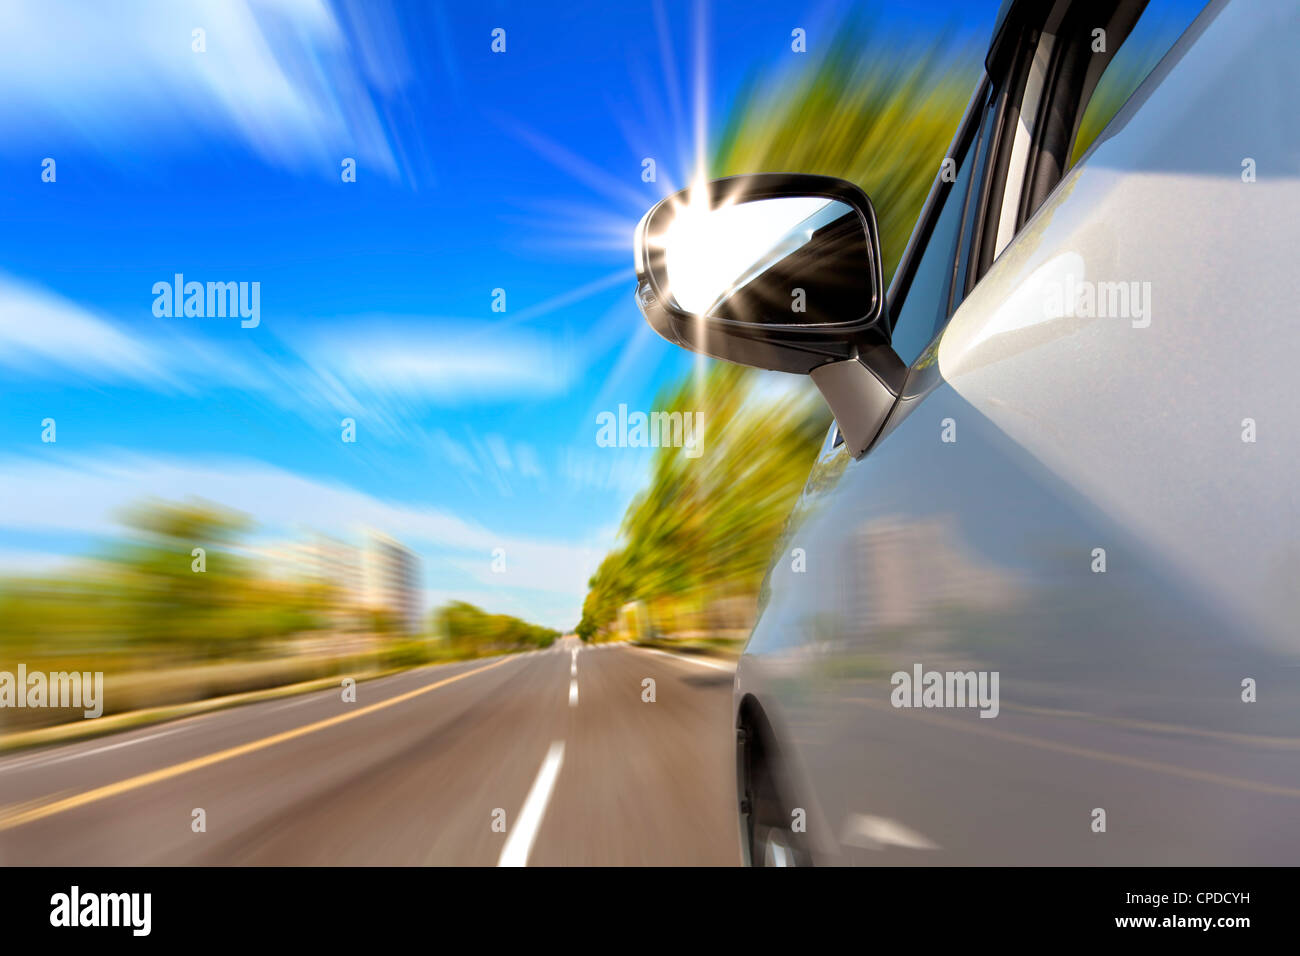 car on the road with motion blur and sunlight in the mirror - Stock Image